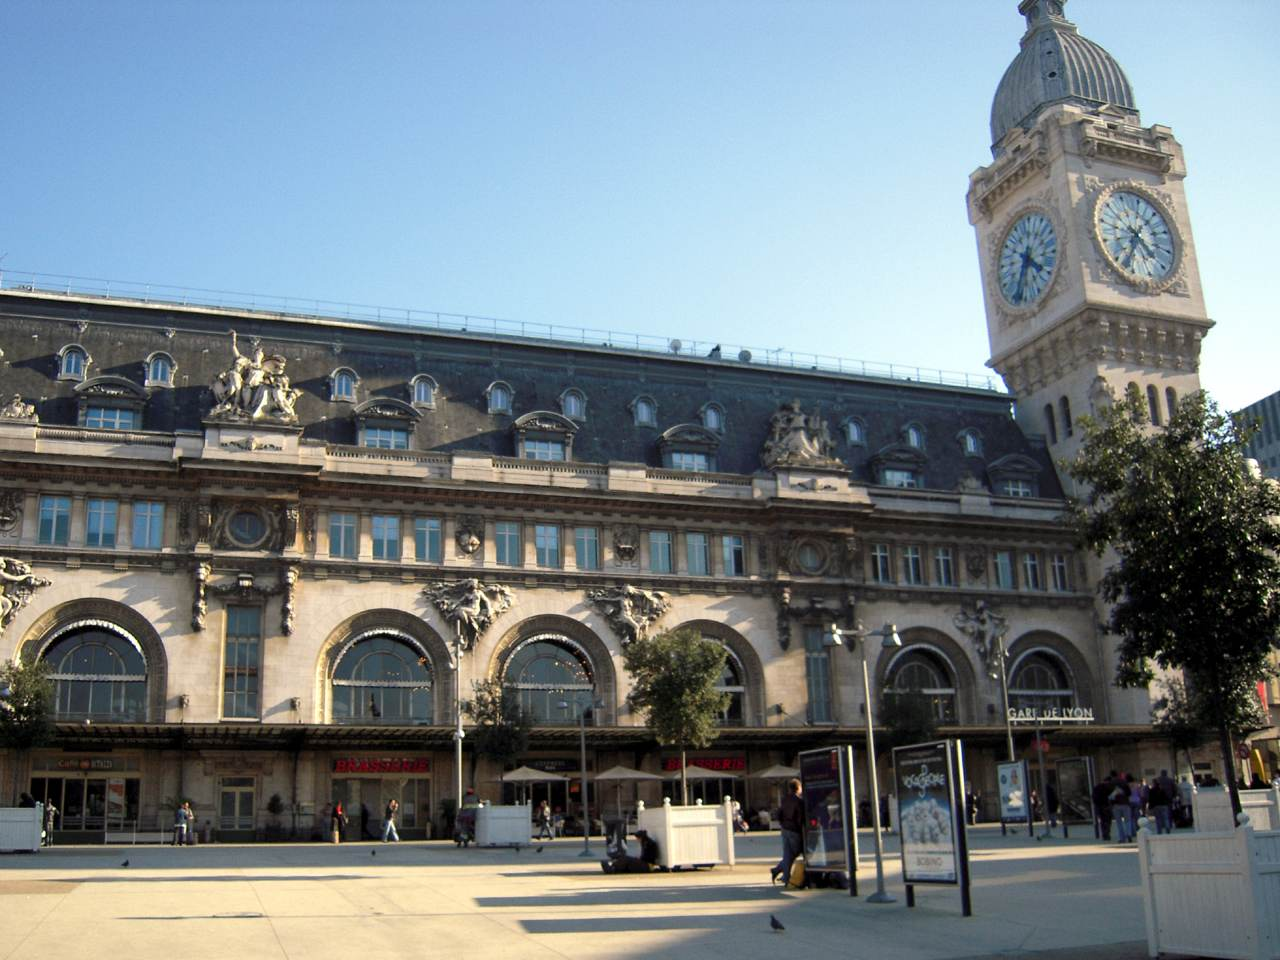 gare de lyon paris bahnhof f r tgv lyria aus schweiz reisef hrer. Black Bedroom Furniture Sets. Home Design Ideas